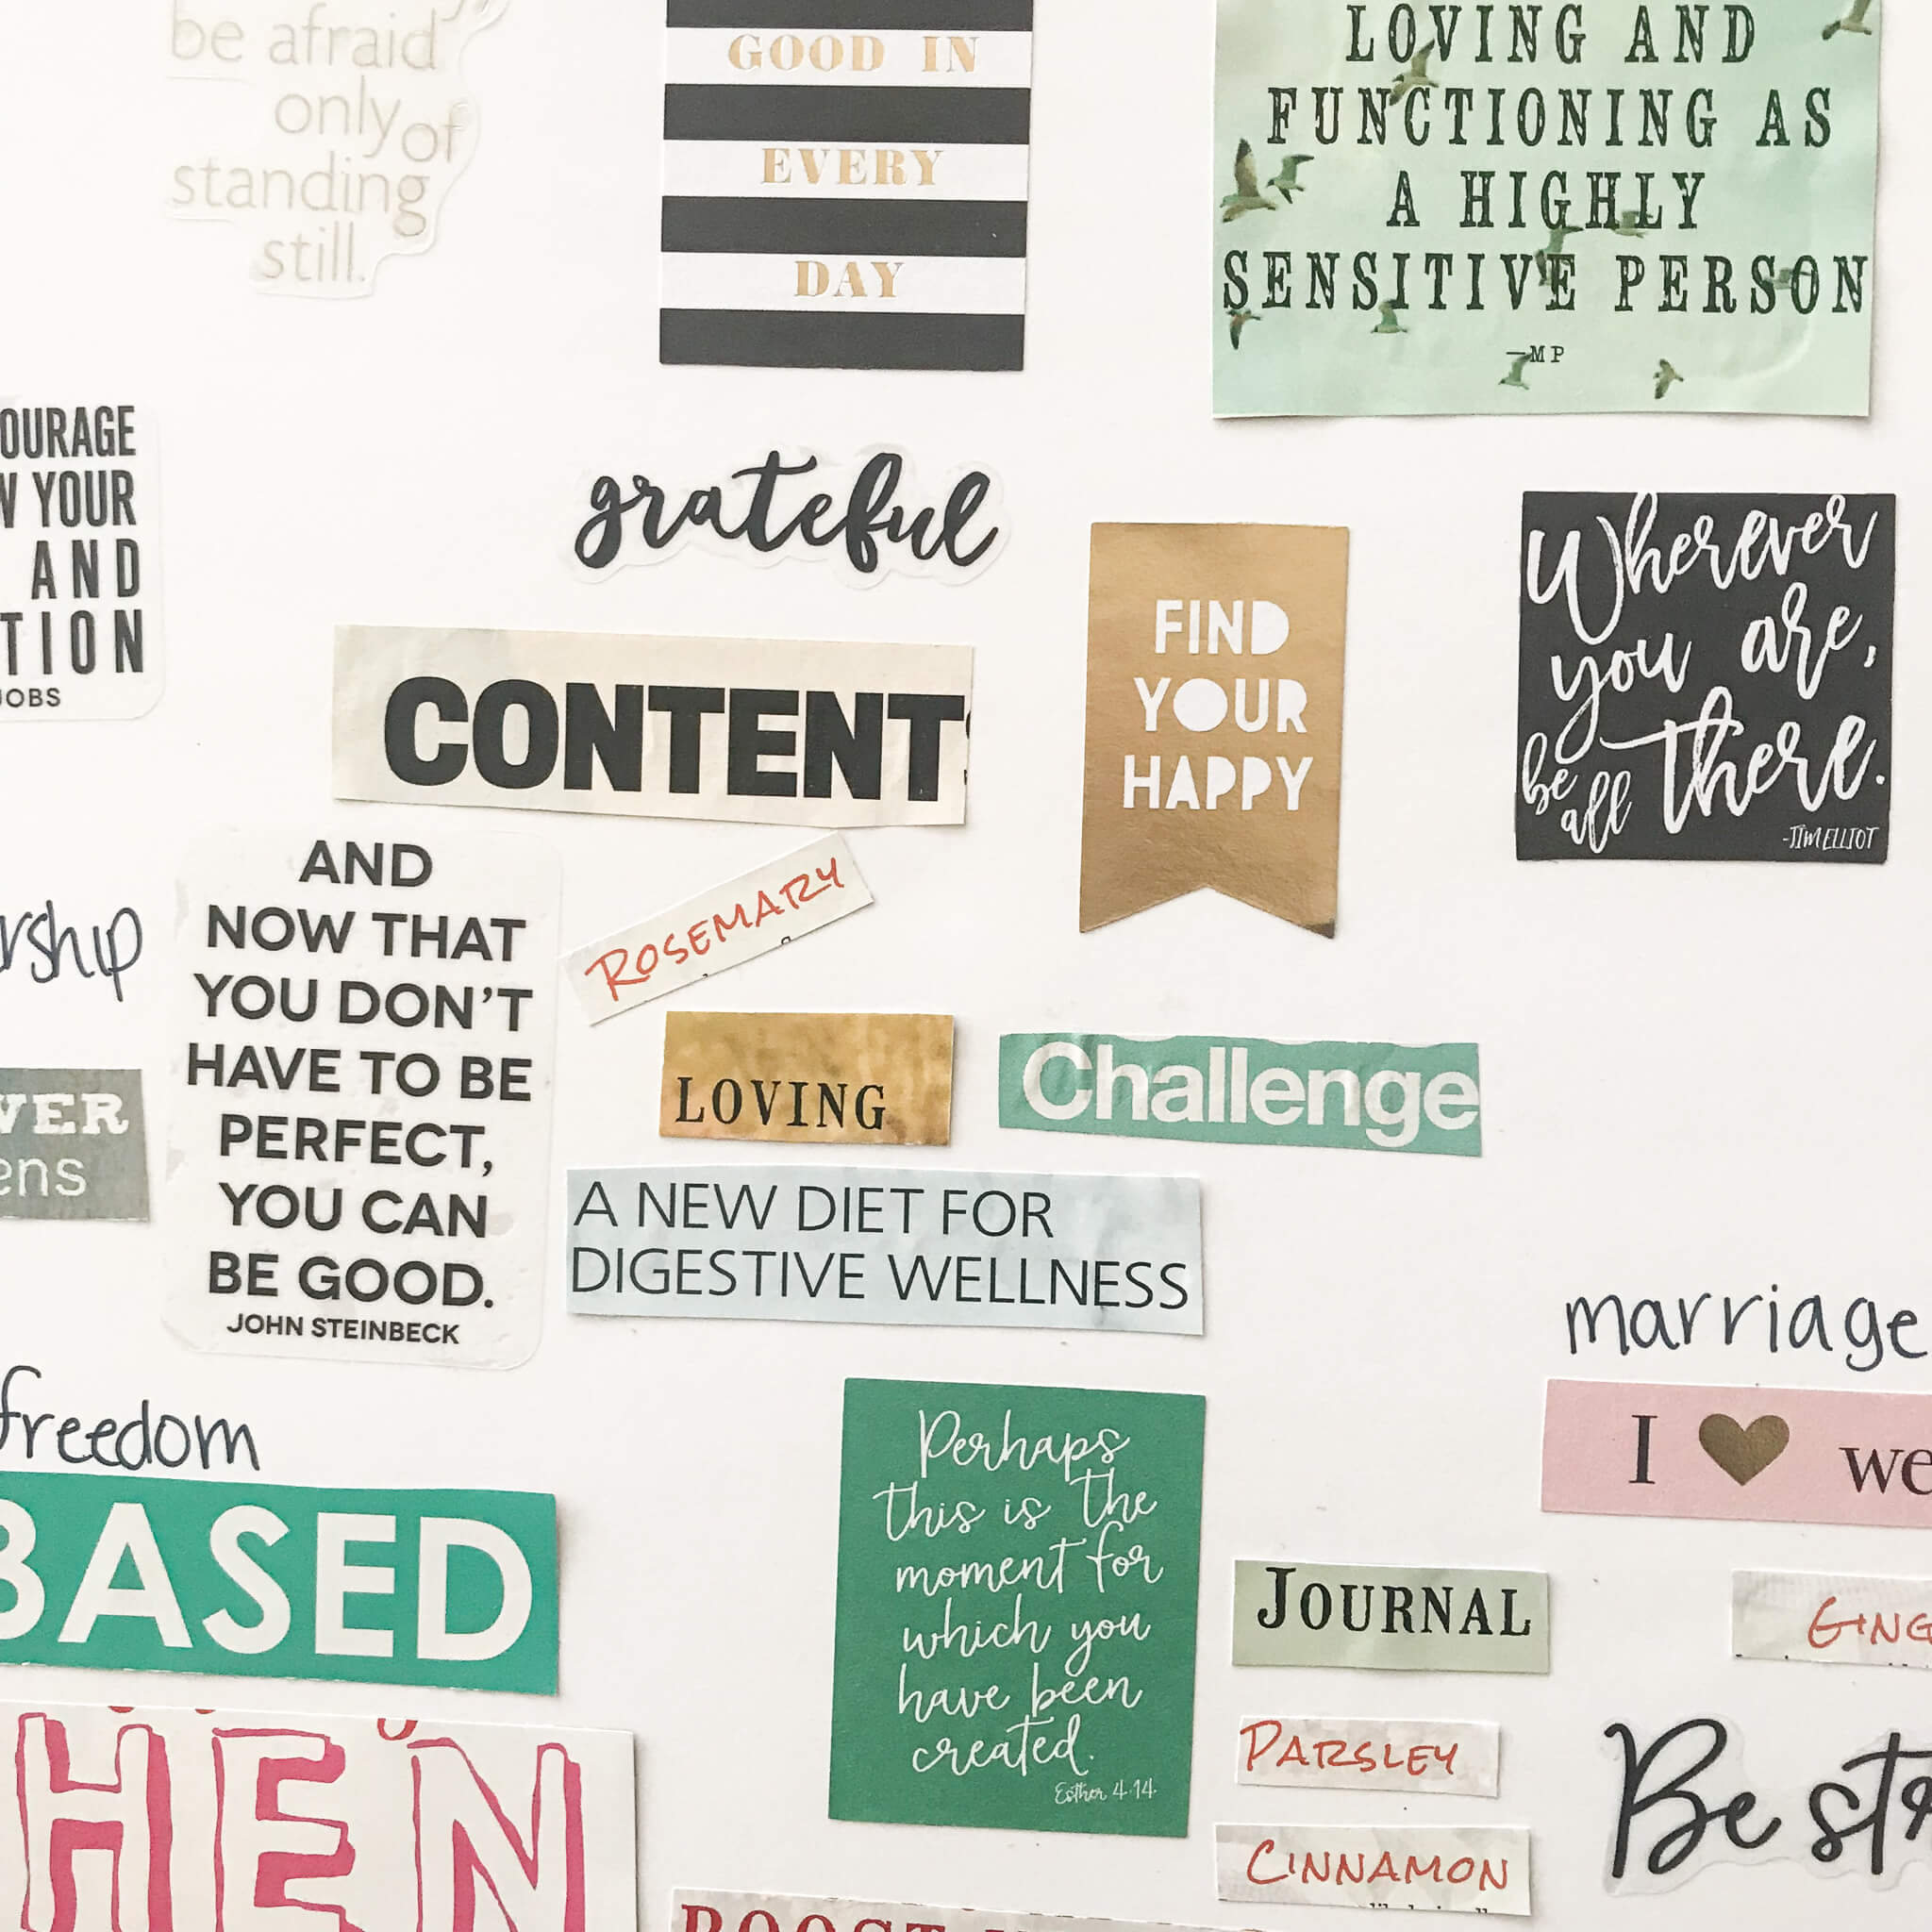 Living with Intention www.sarahkayhoffman.com #goals #mompreneur #intention #visionboard vision boards